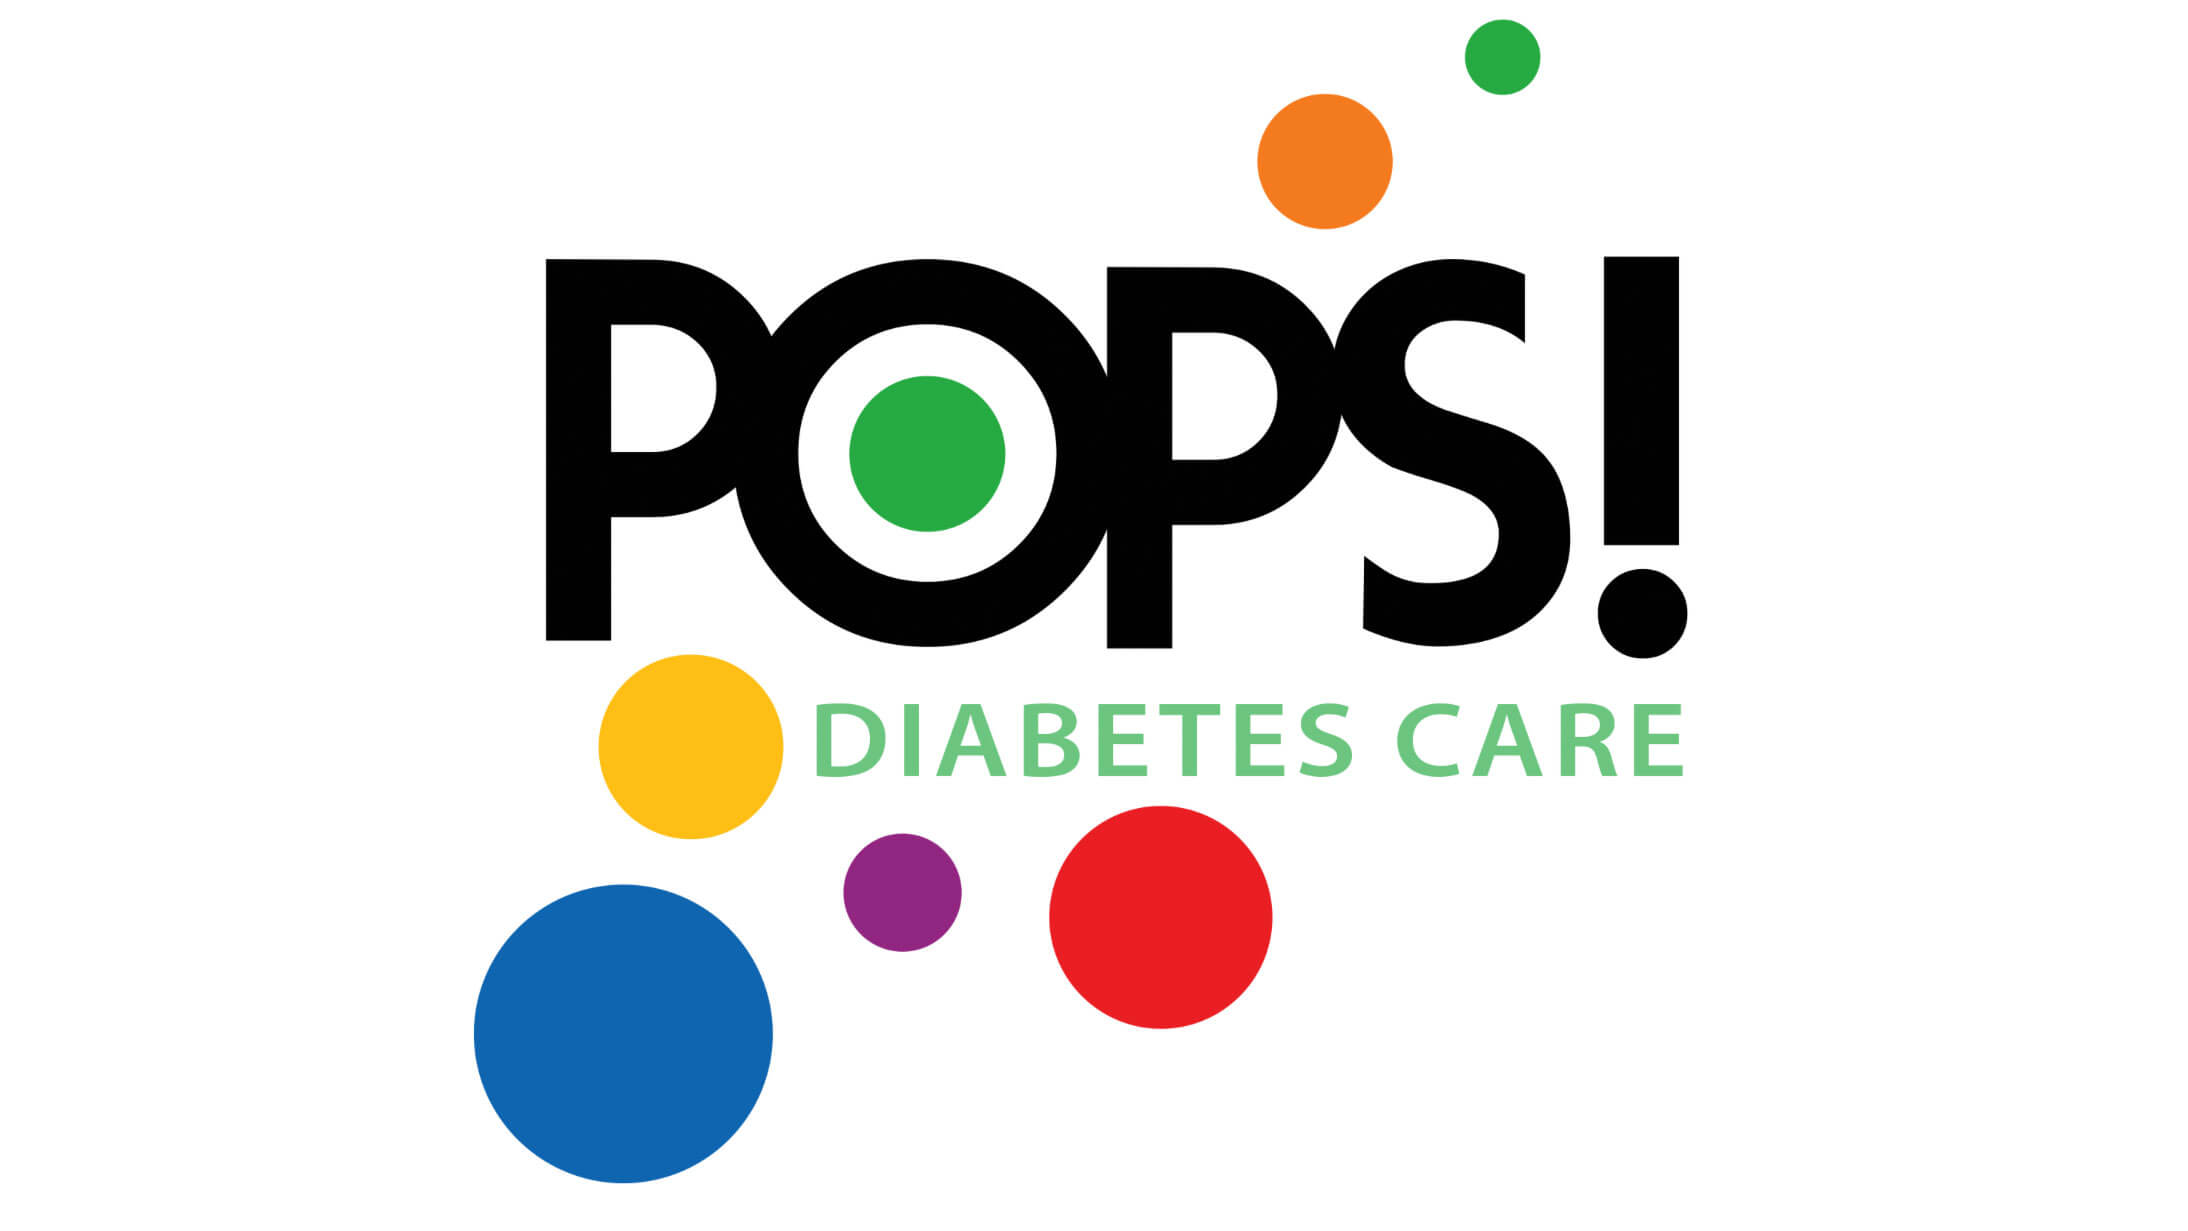 POPS! Diabetes Care